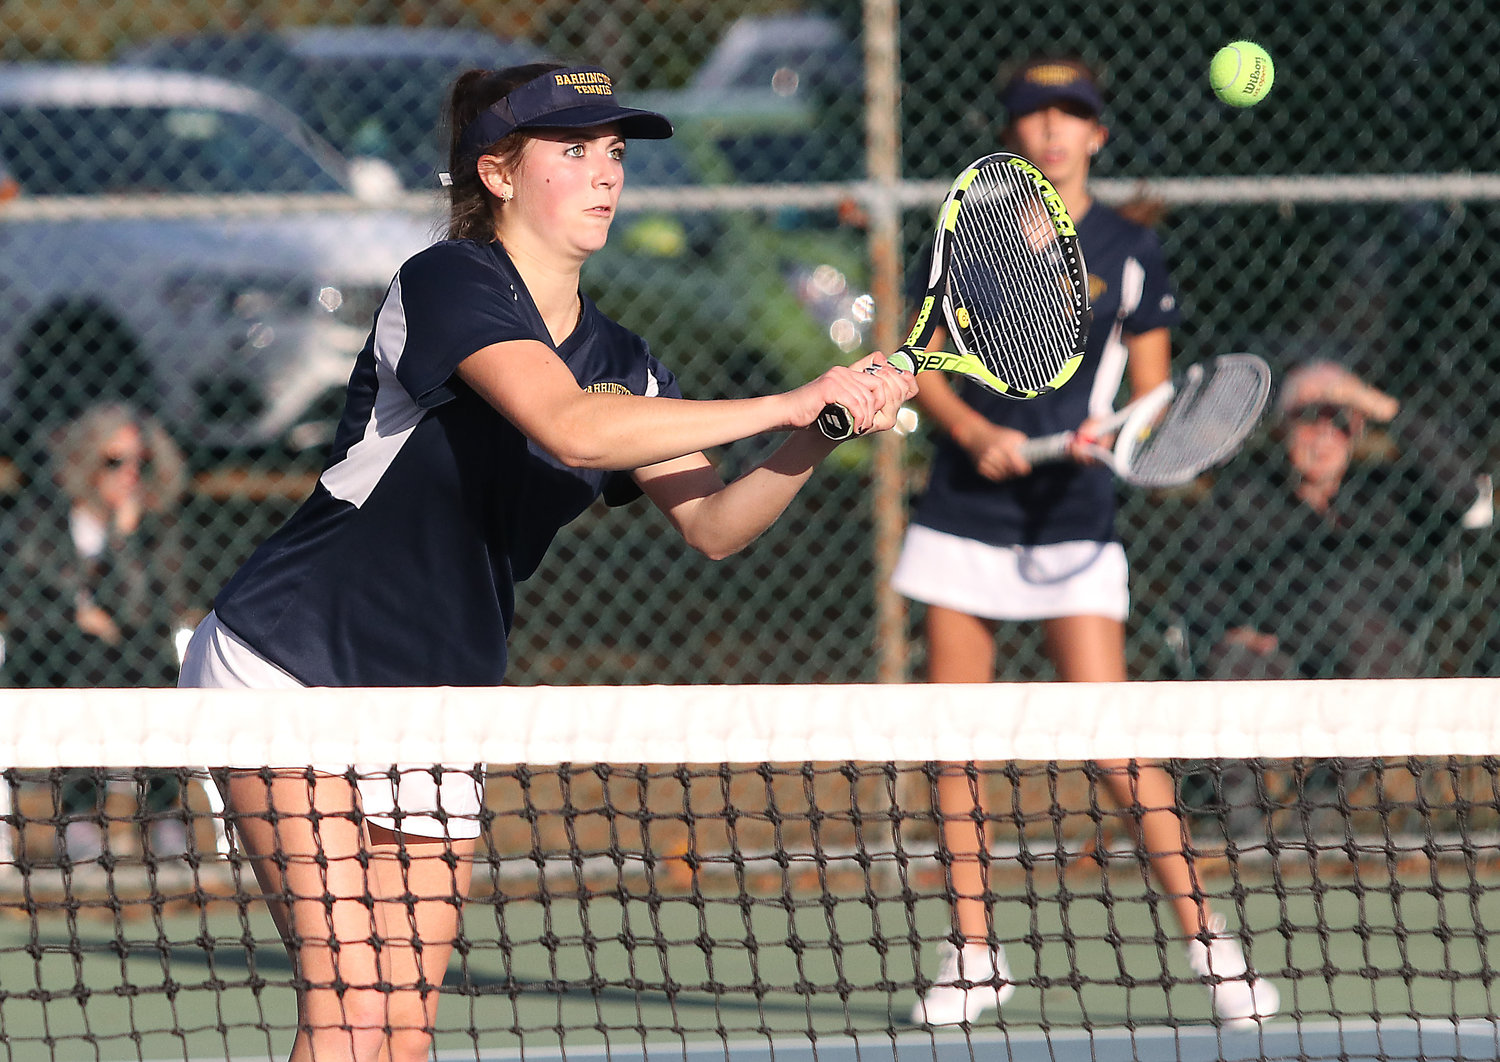 Barrington's Lauren Jay returns a shot during the second doubles match at the state finals on Saturday. Lauren and Sonya Pareek are Barrington's second doubles team.